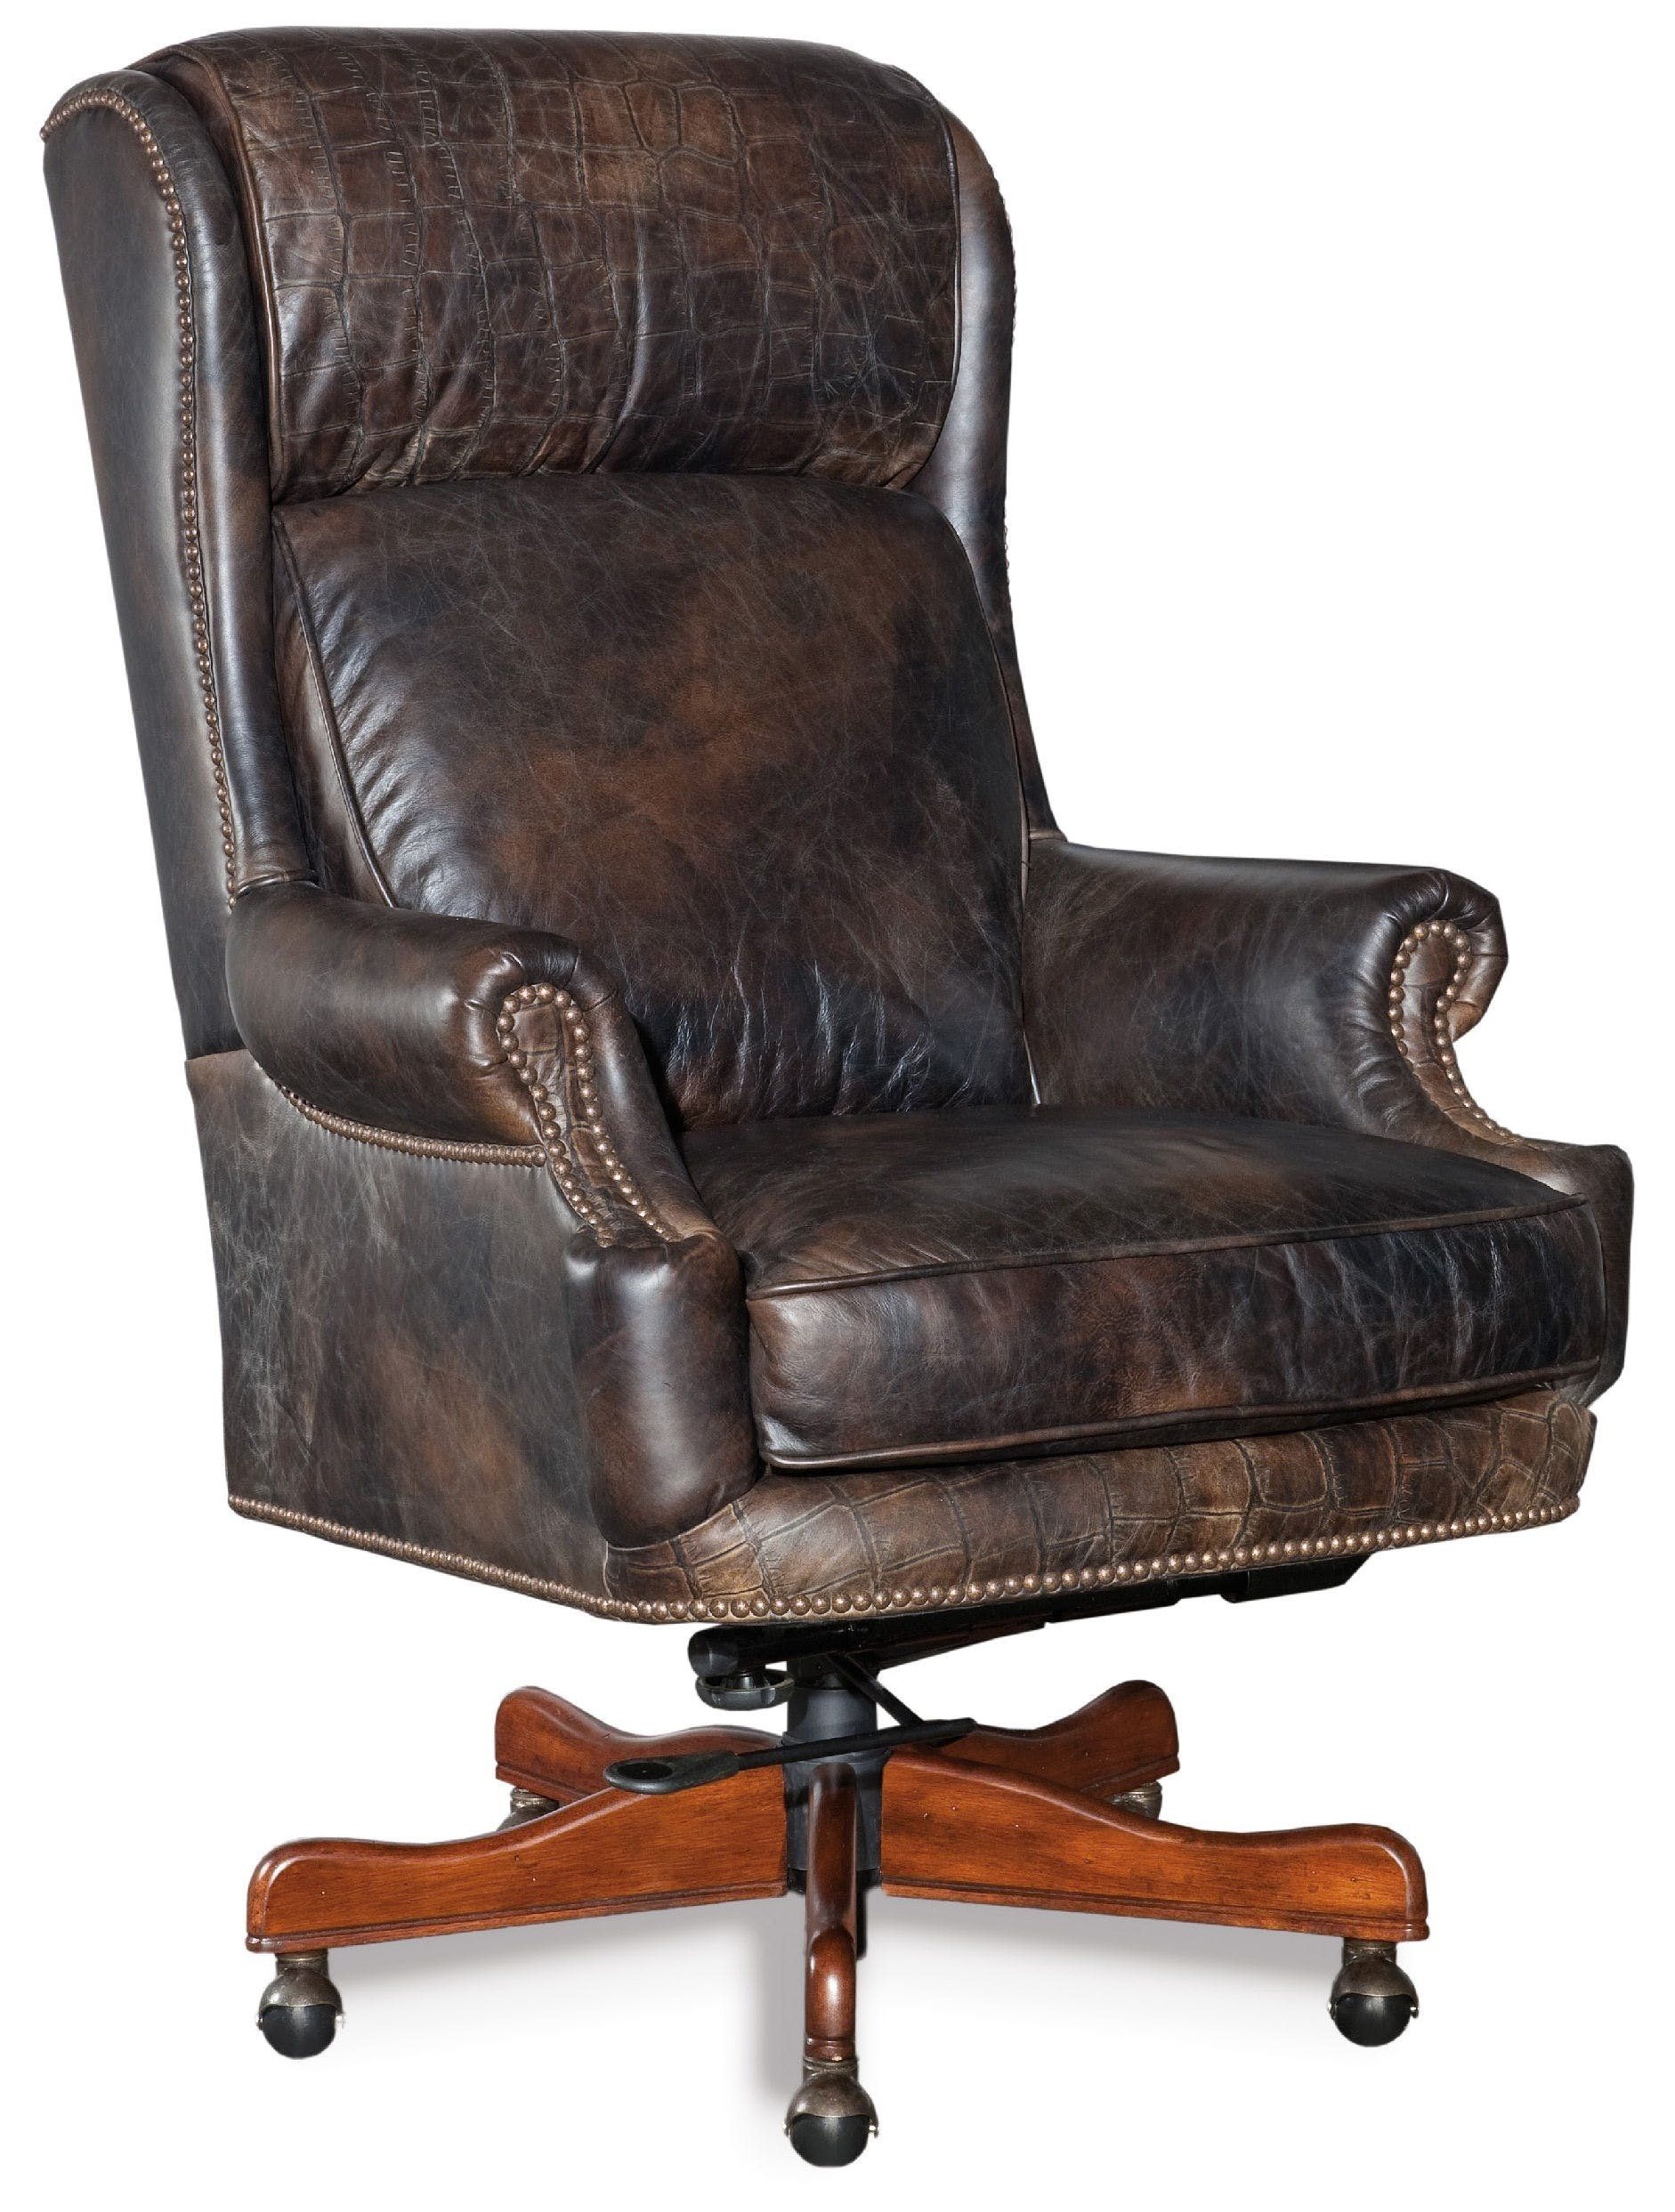 brown leather office chairs. Hooker Furniture Tucker Executive Swivel Tilt Chair, Brown Leather Office Chairs